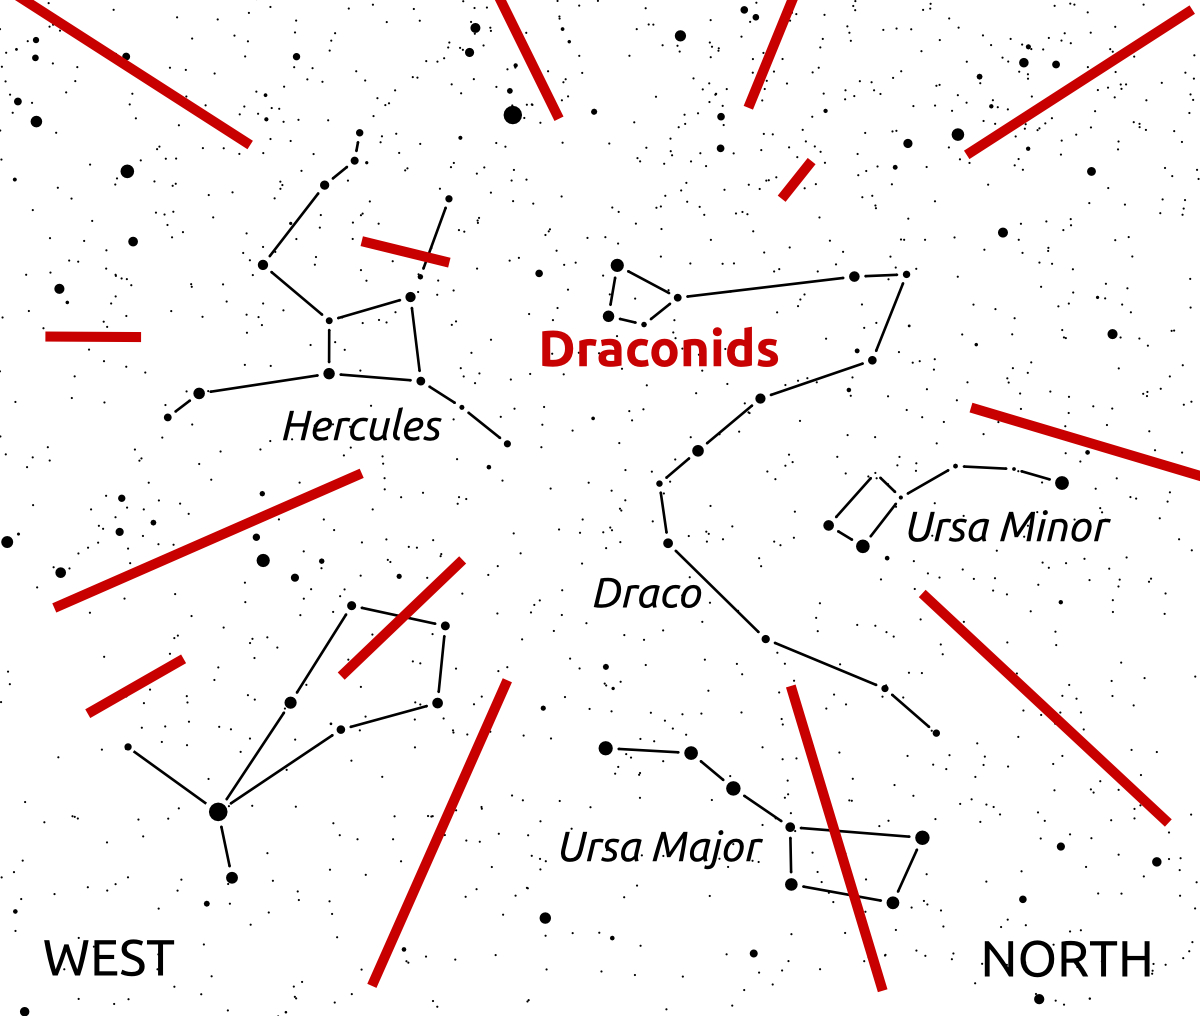 Draconid Meteor Shower 2011 Star Map